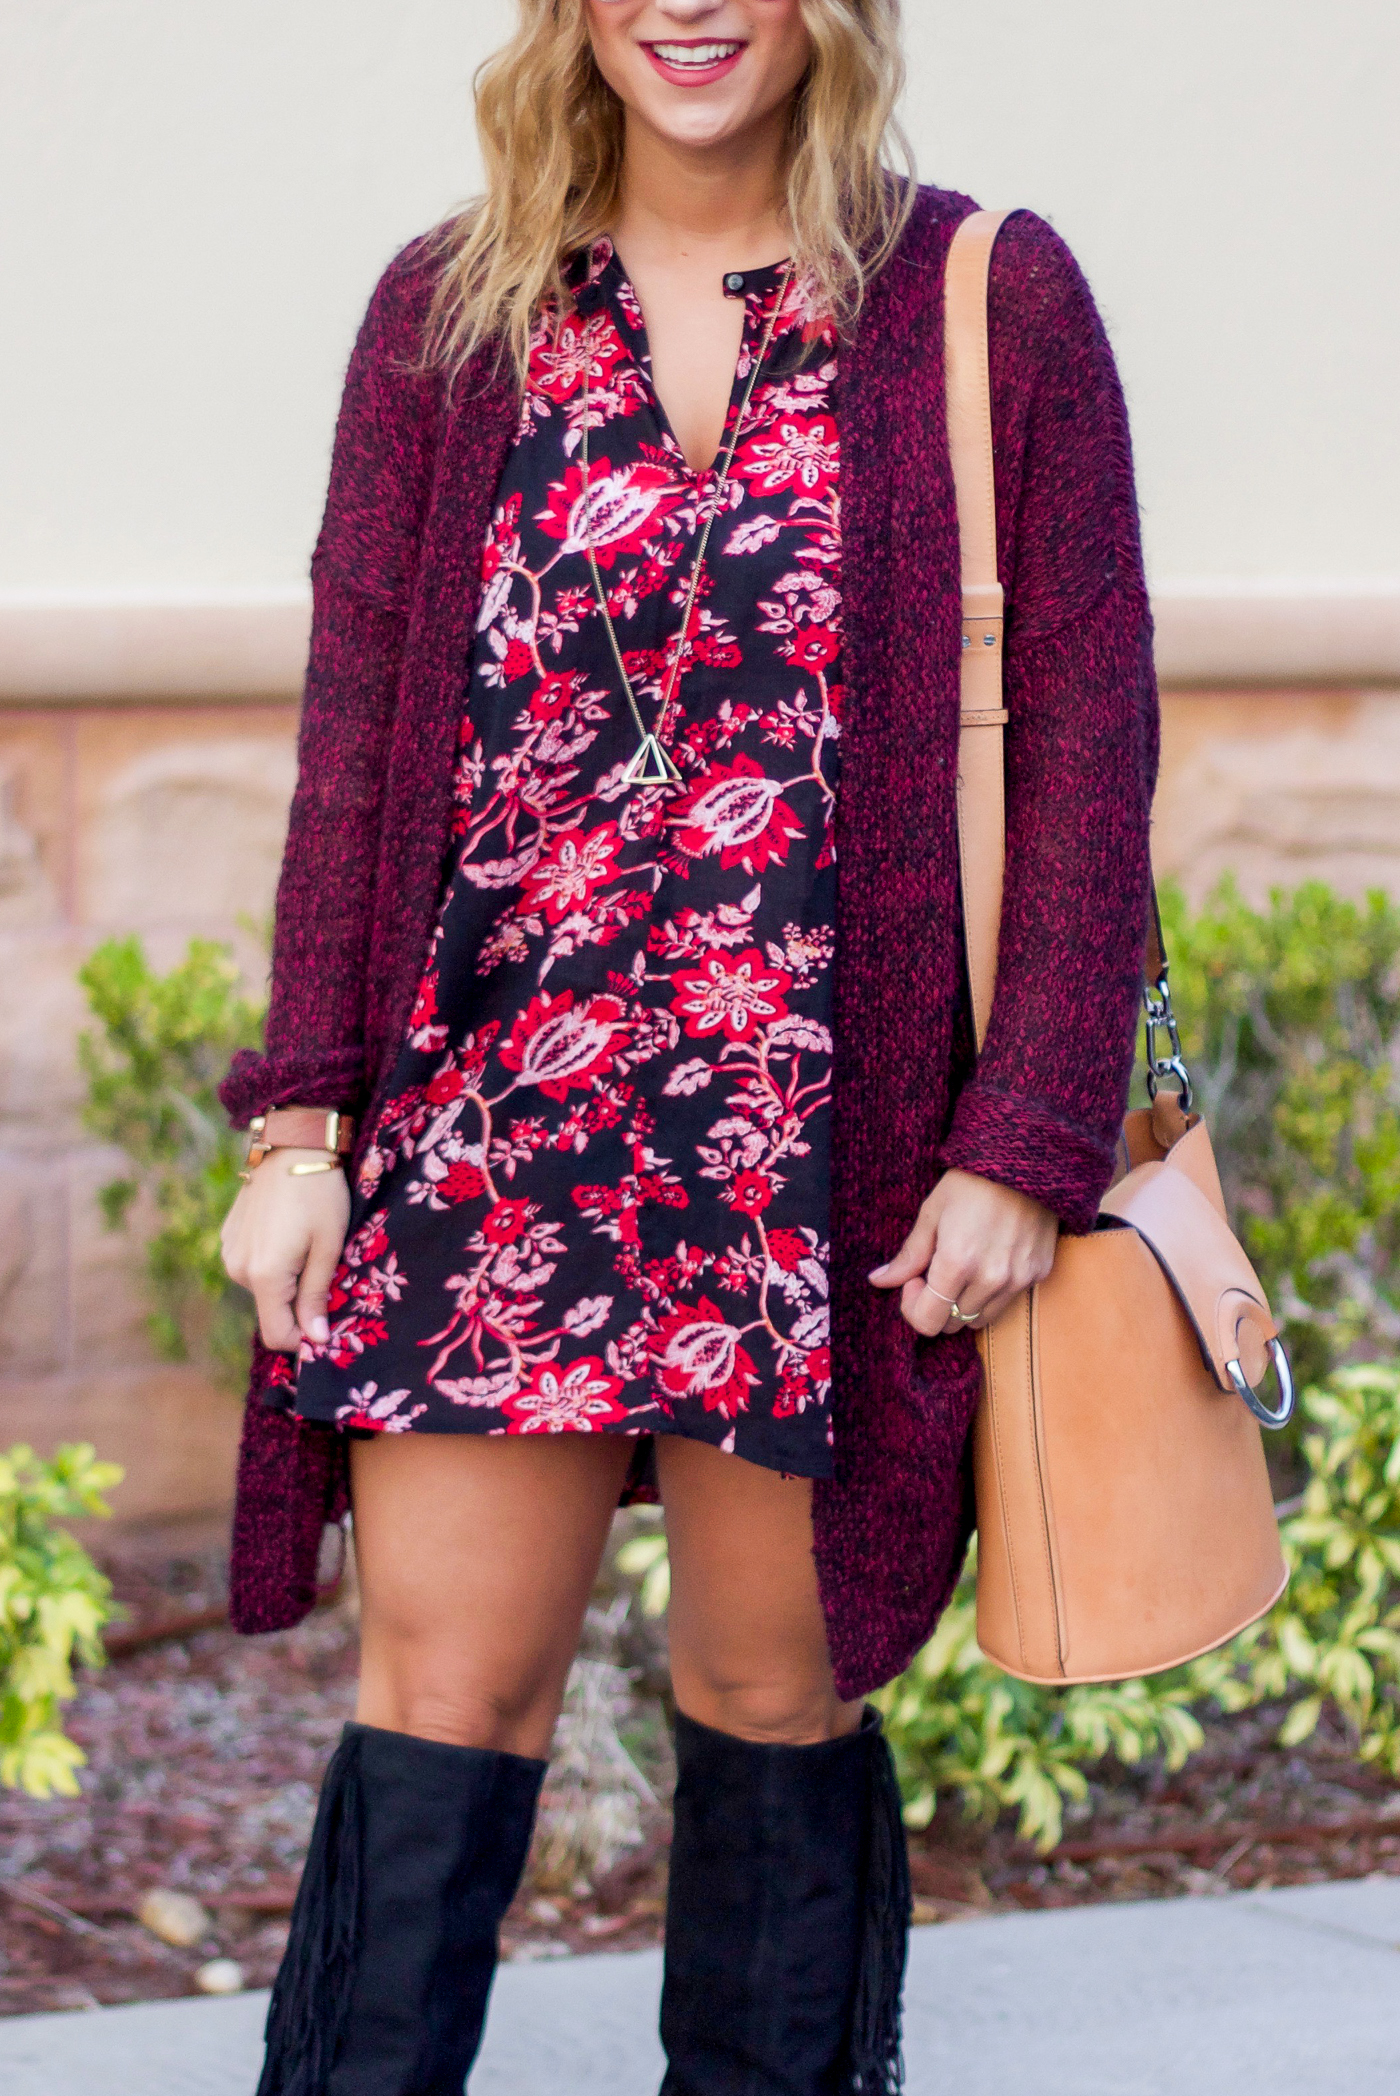 Jackie is a Canadian fashion blogger, wearing a dark floral printed dress that she bought at Nordstrom rack